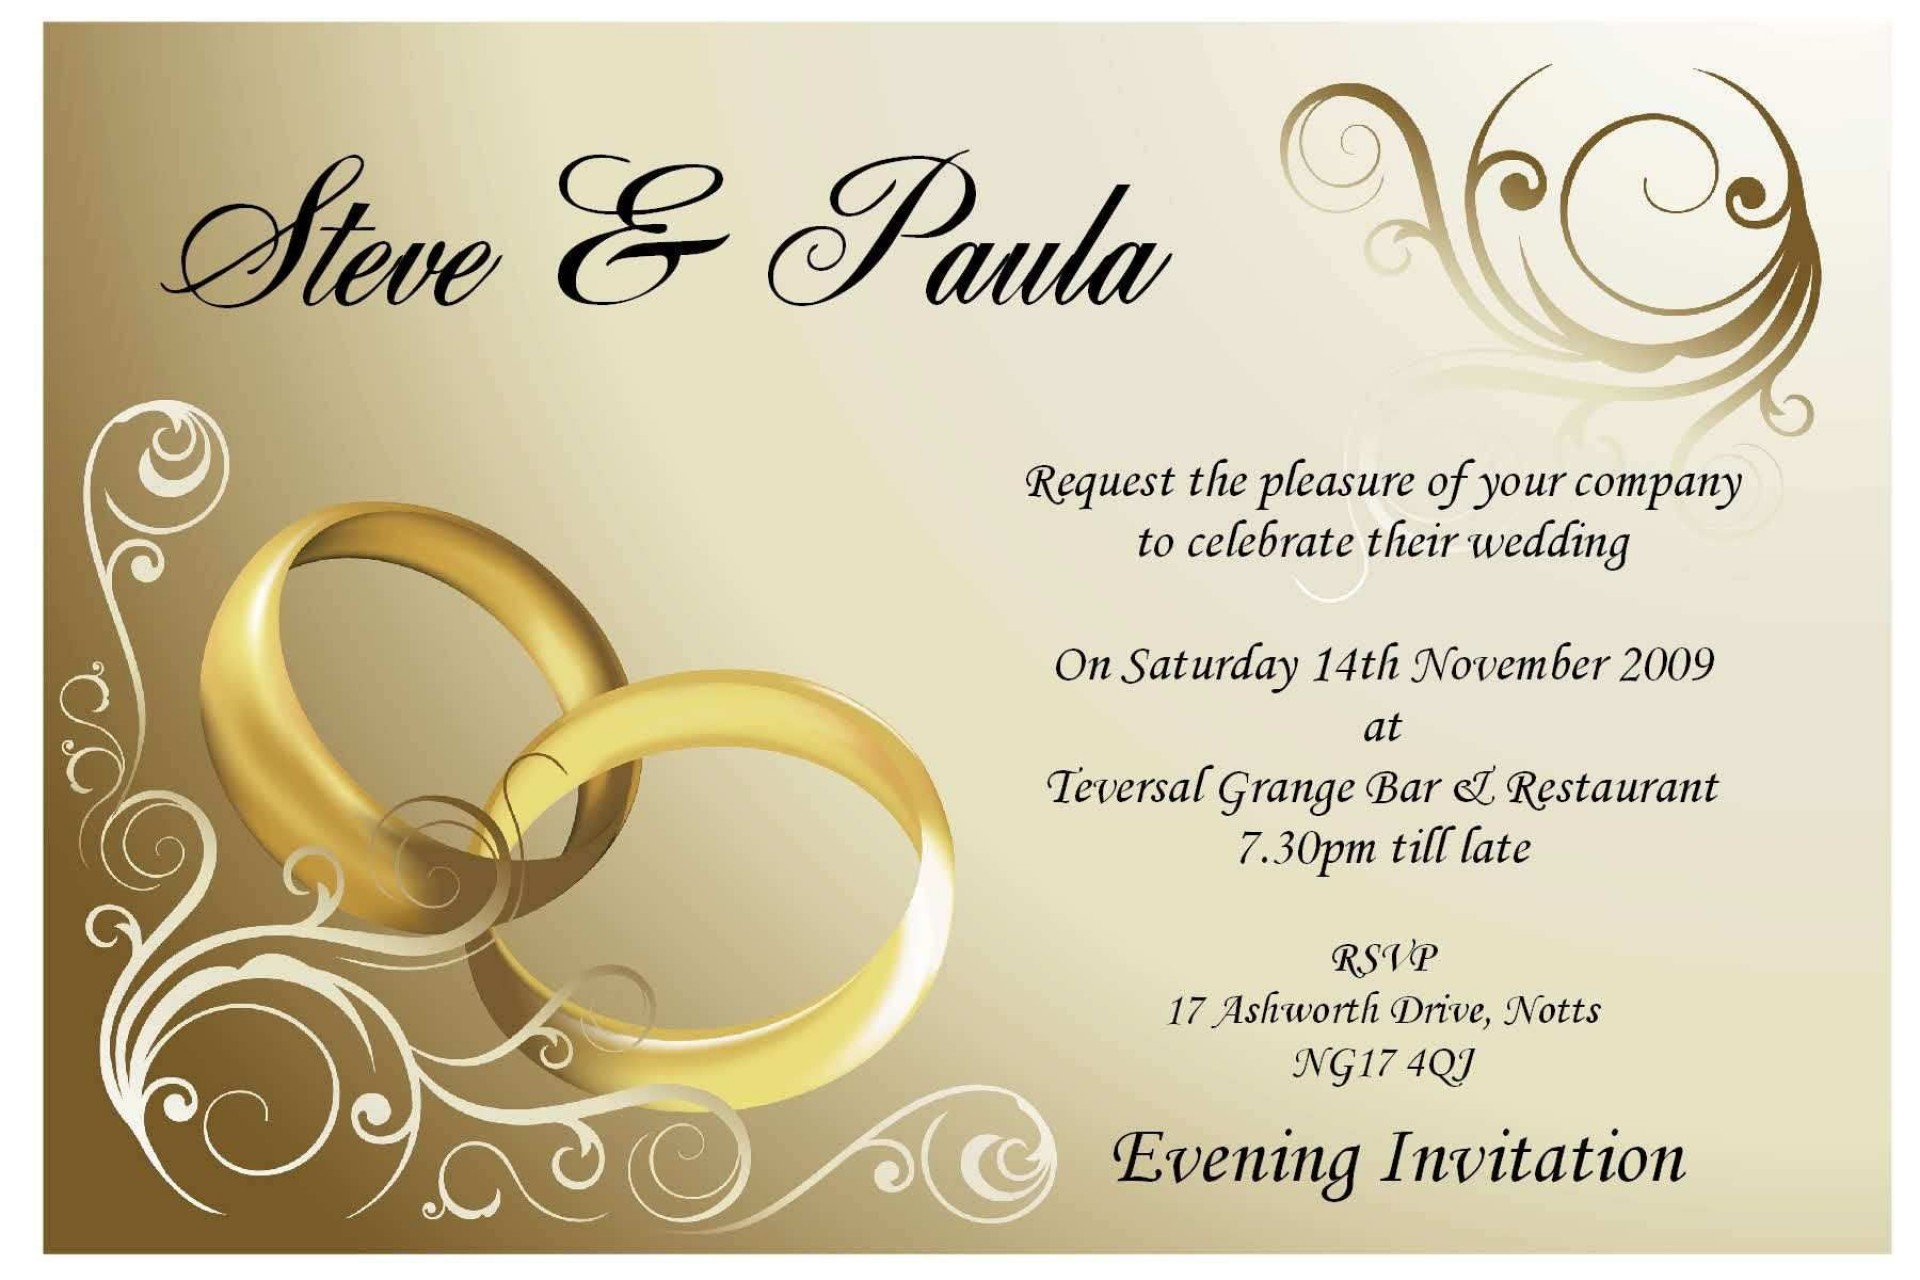 003 Fantastic Free Online Indian Wedding Invitation Card Template Highest Clarity 1920